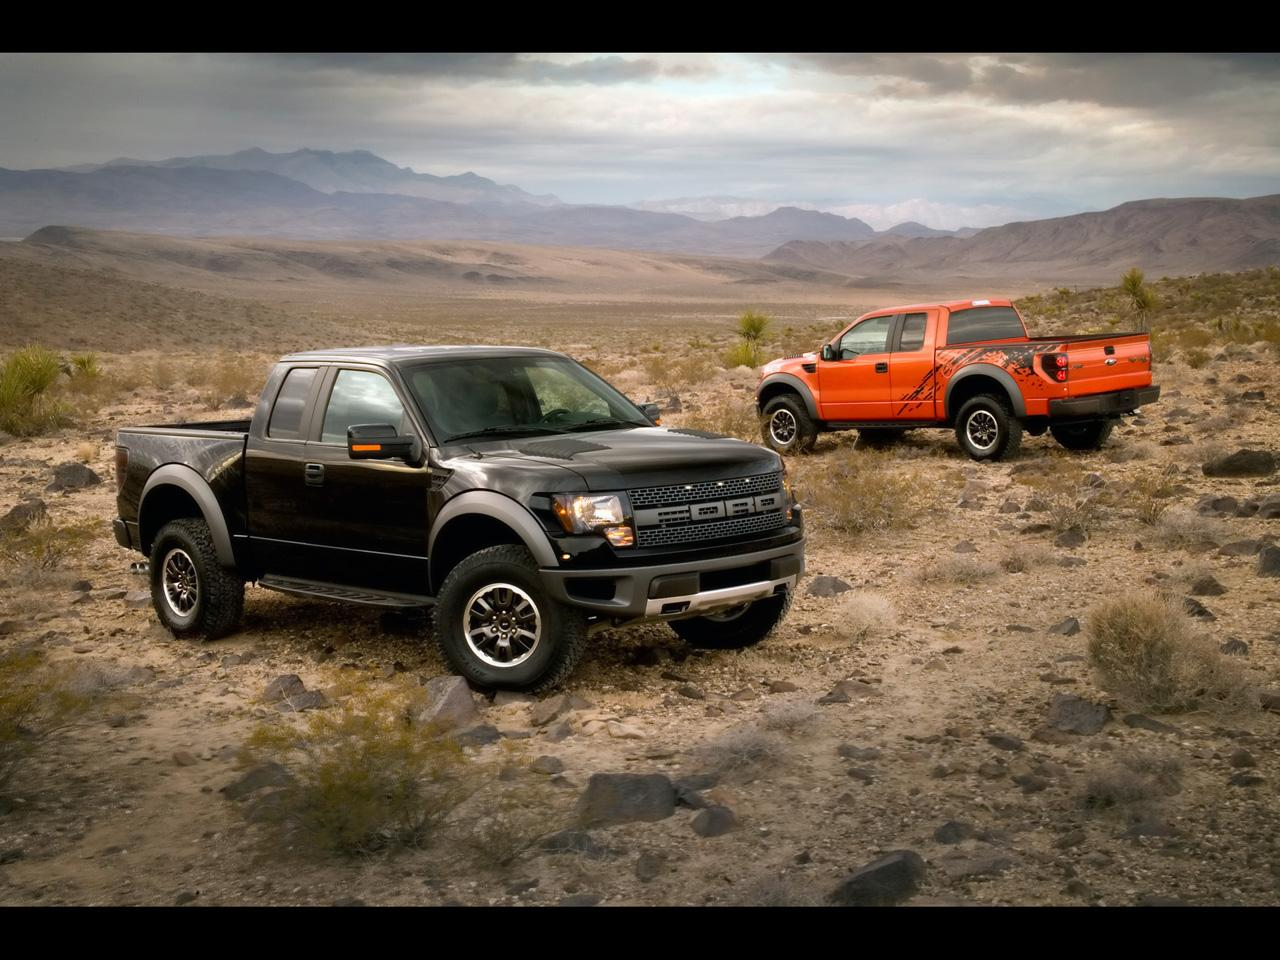 2010 Ford Raptor Svt 4871 Hd Wallpapers in Cars   Imagescicom 1280x960